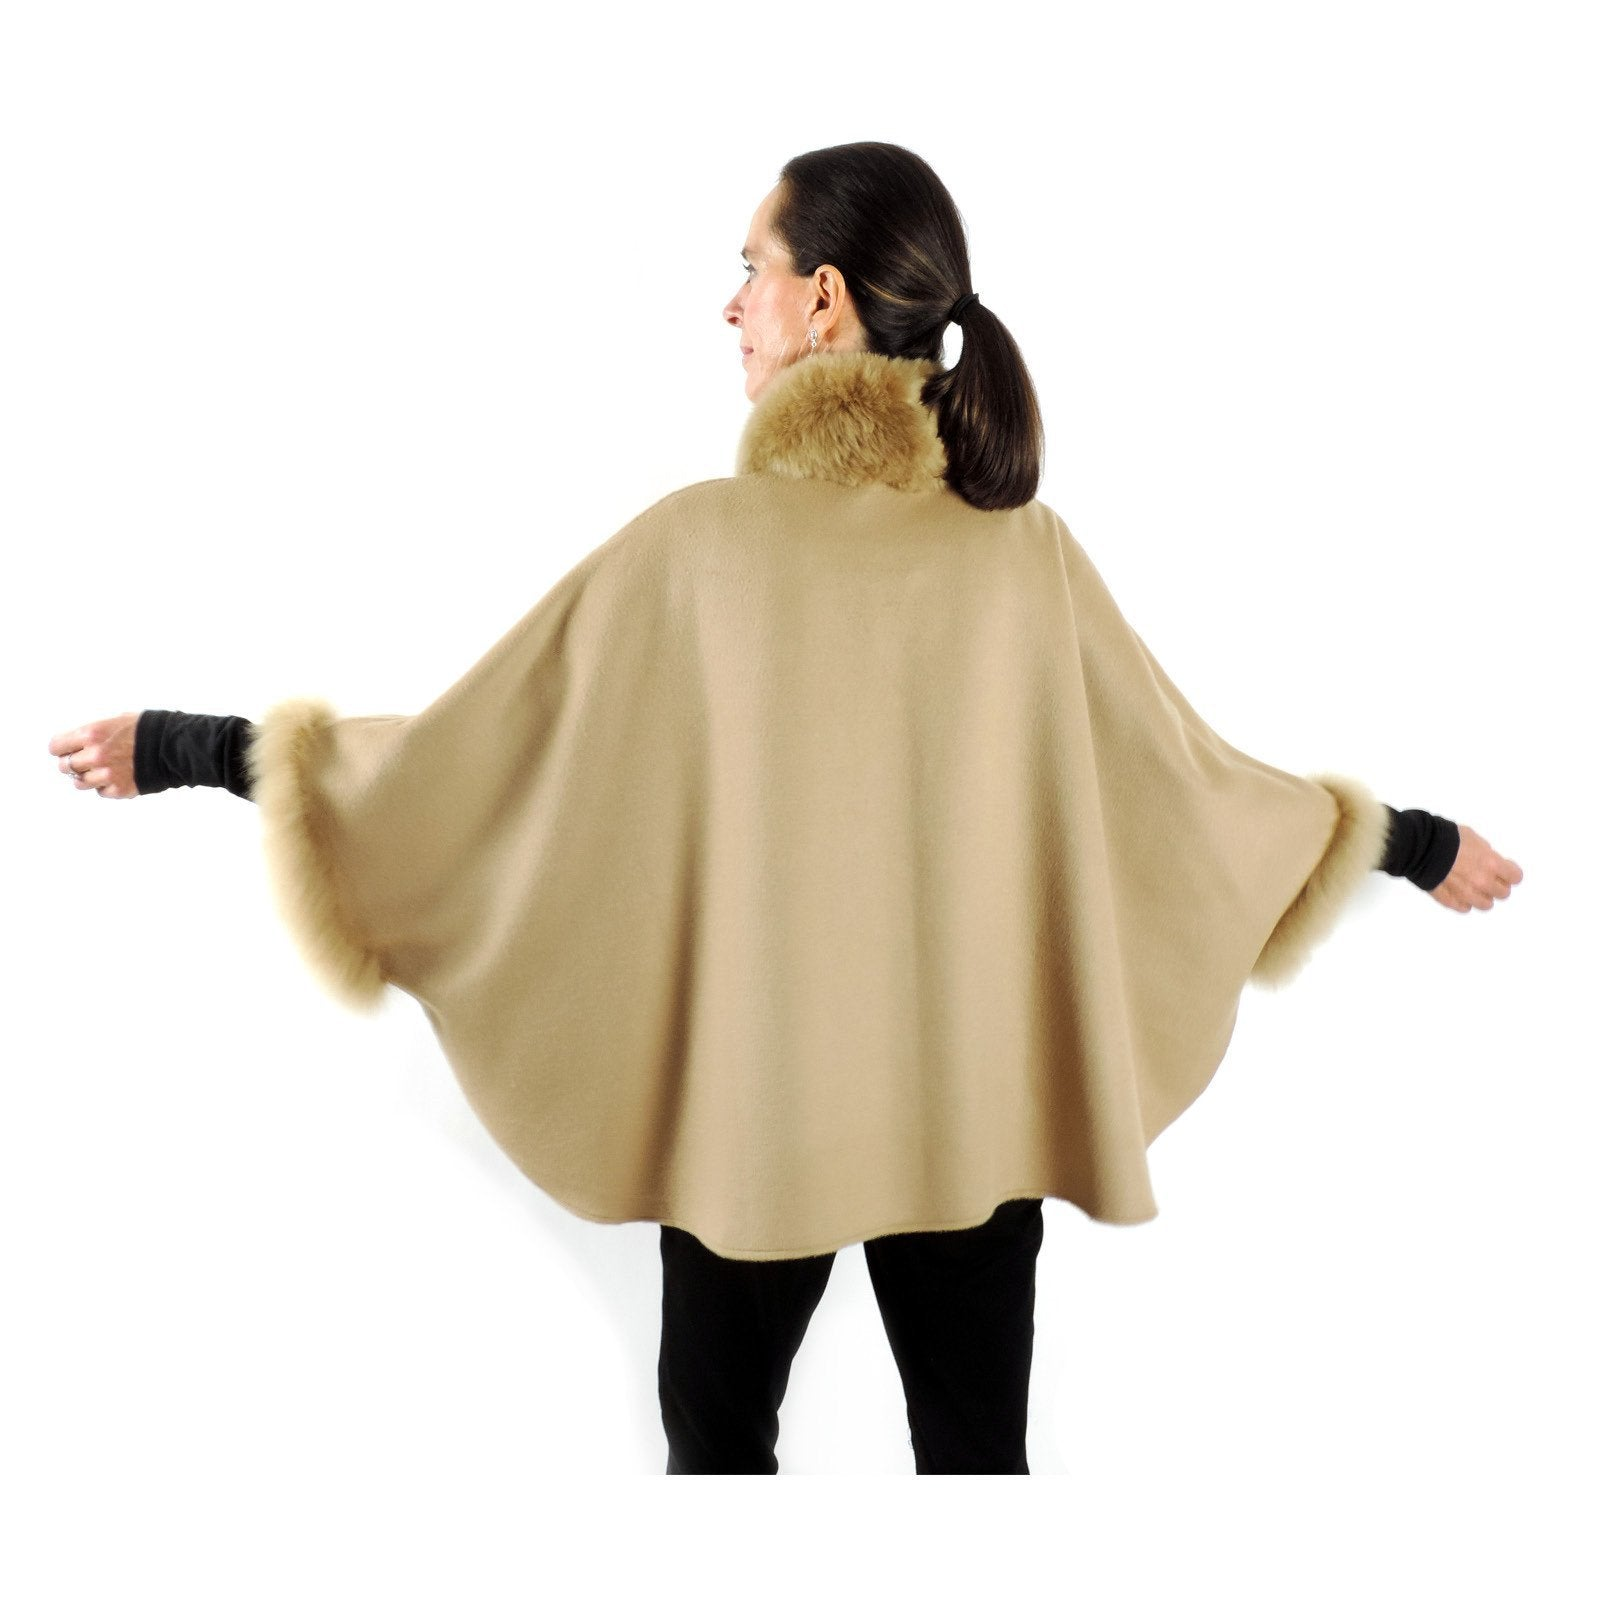 Baby Alpaca Cape with Fur Collar and Sleeves - Beige - Qinti - The Peruvian Shop